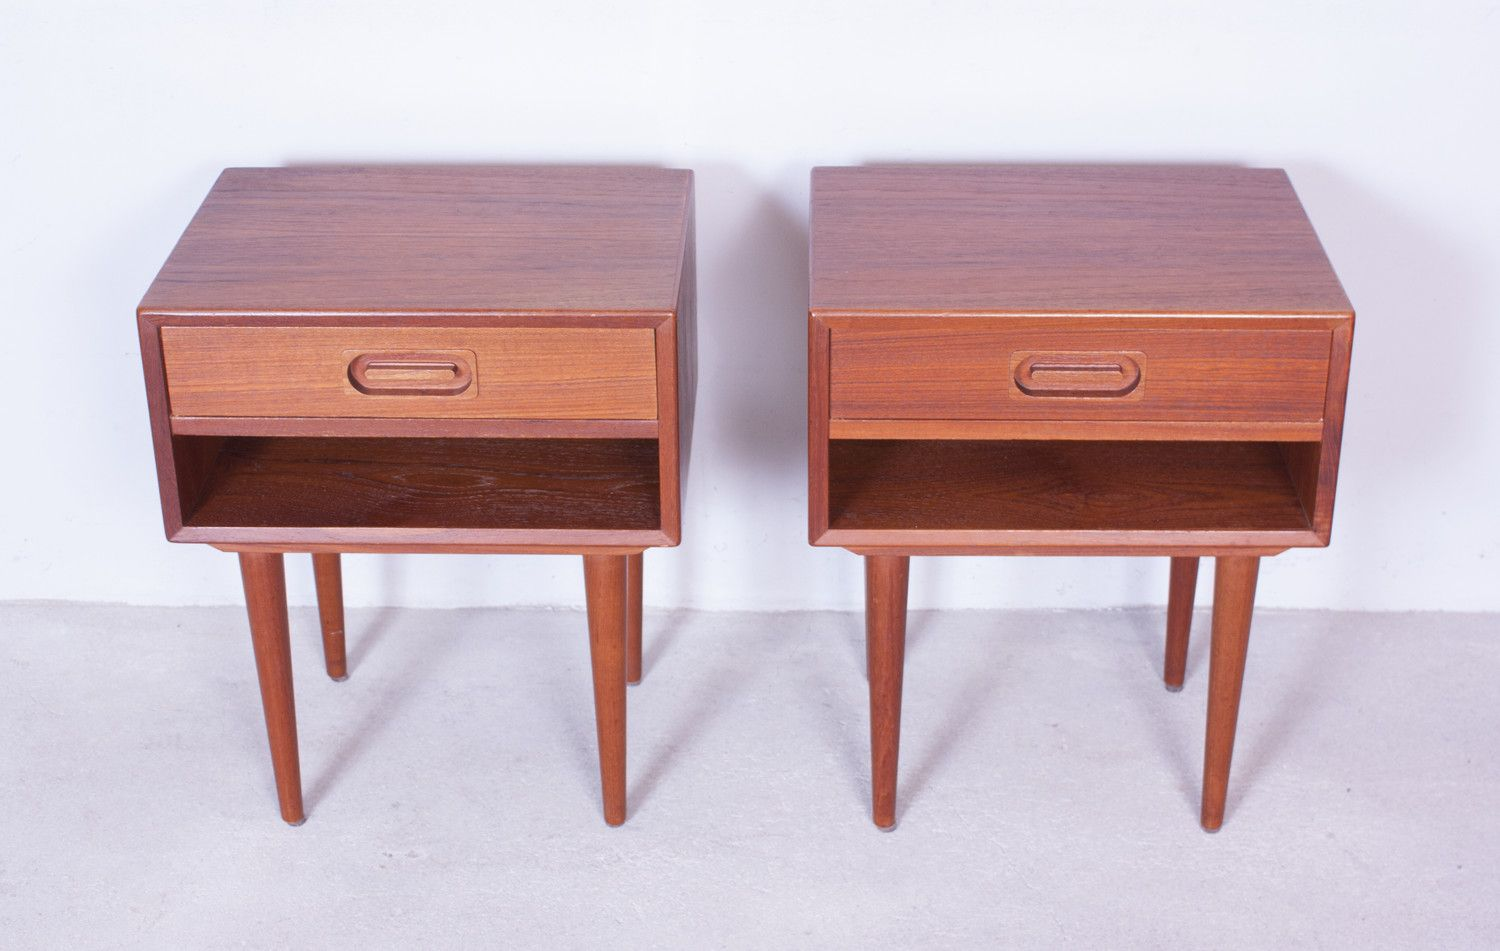 Vintage Teak Nightstands by Dyrlund Set of 2 for sale at Pamono